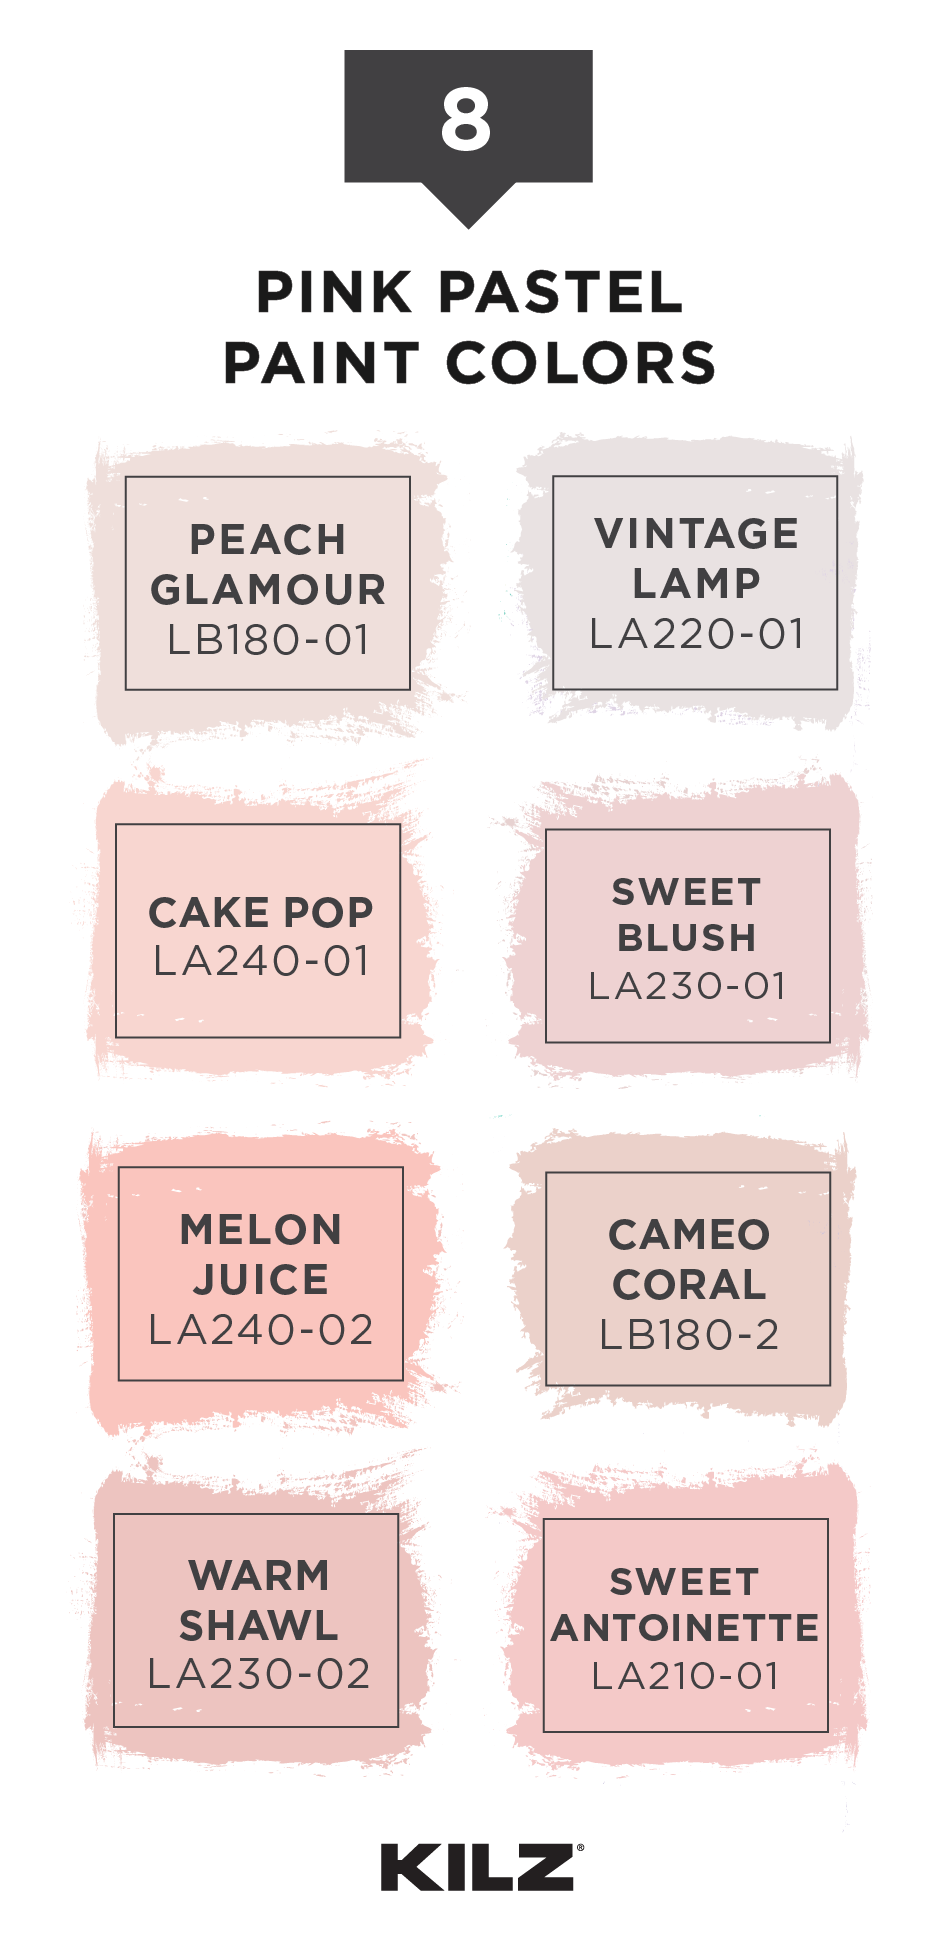 Check Out This Pink Pastel Color Palette From Kilz Complete Coat Paint Primer In One Light Shades Like Peach Glamour Vintage Lamp Cake Pop